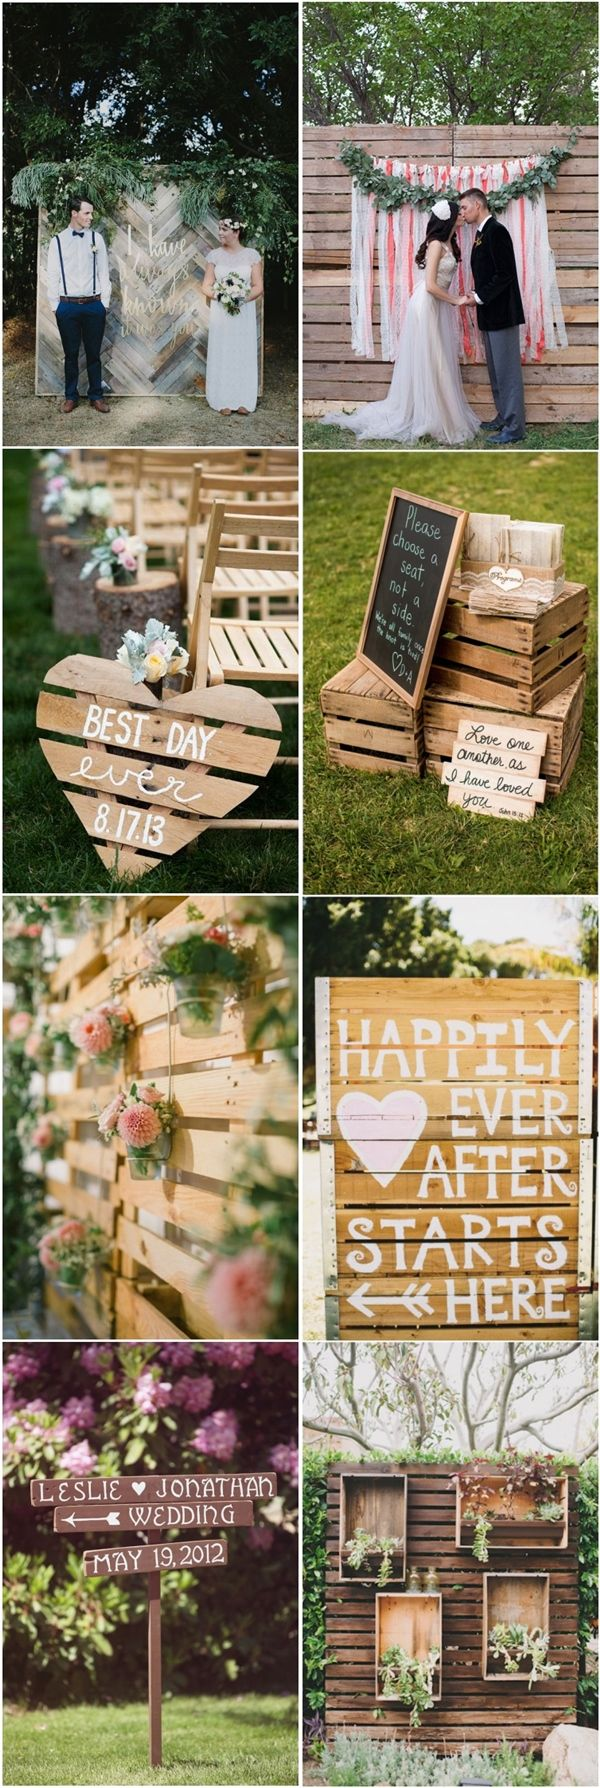 35 ideas para decorar con tablas tu boda. #BodasCampestres